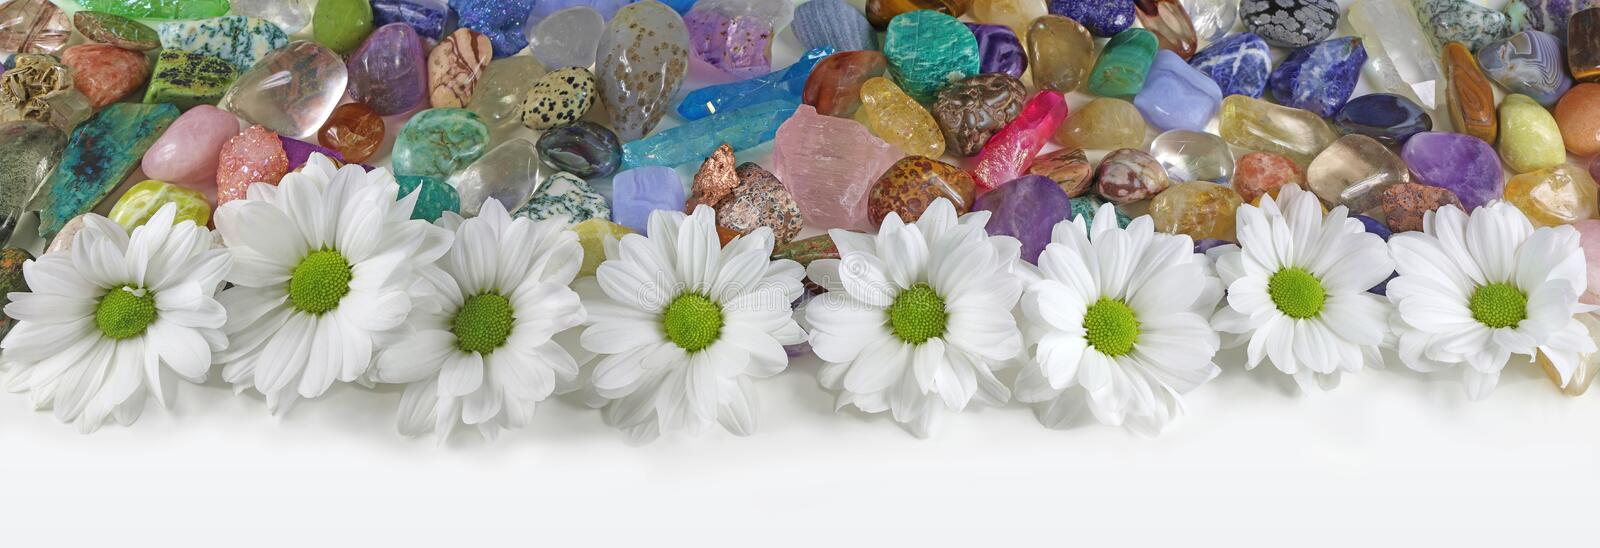 Daisies and Healing Crystals Banner stock photography